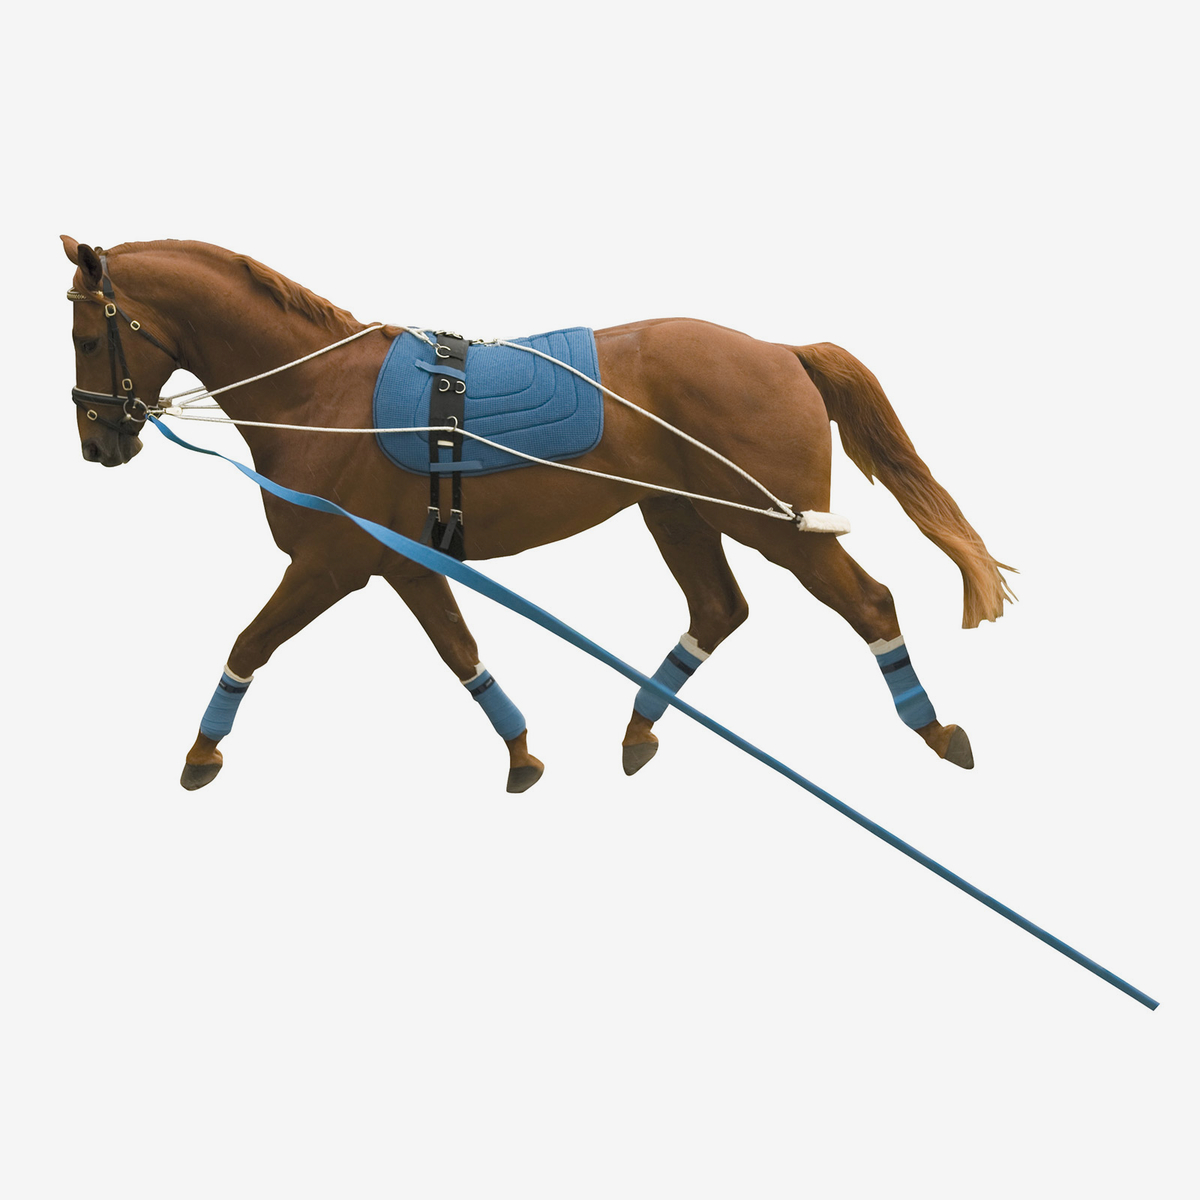 Kincade Lunging Training System Horze